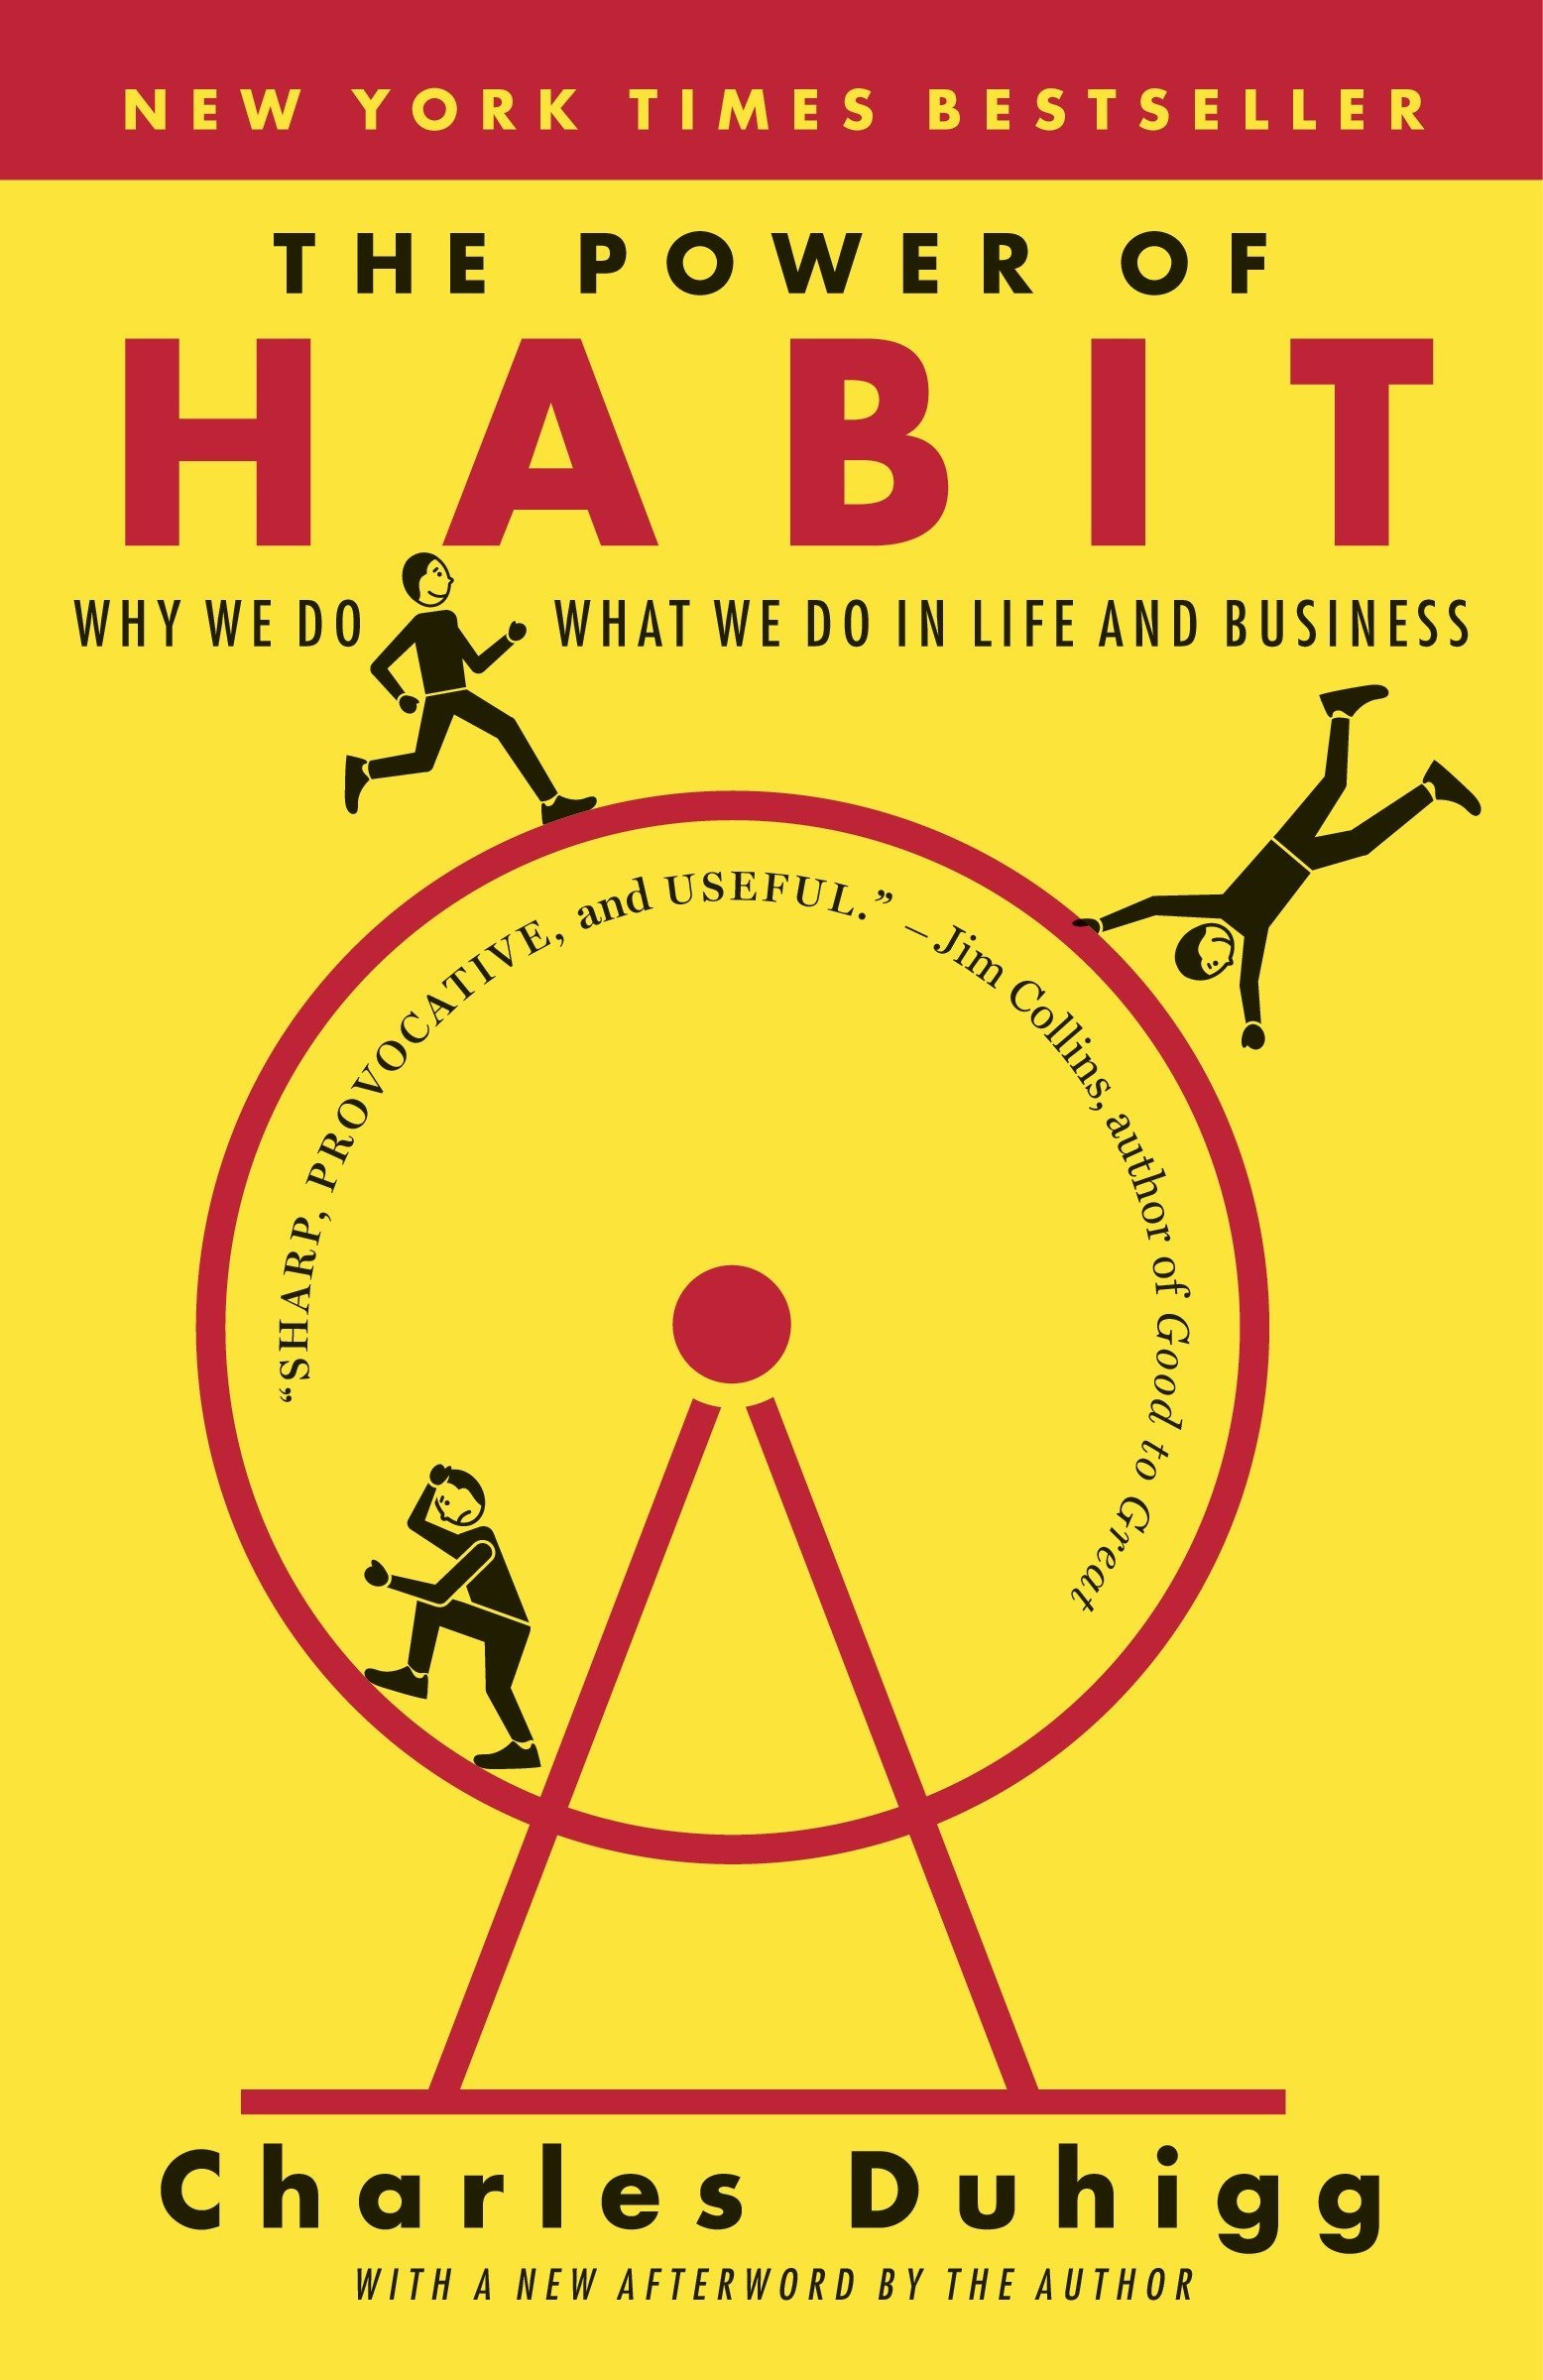 Charles Duhig - The Power of Habit